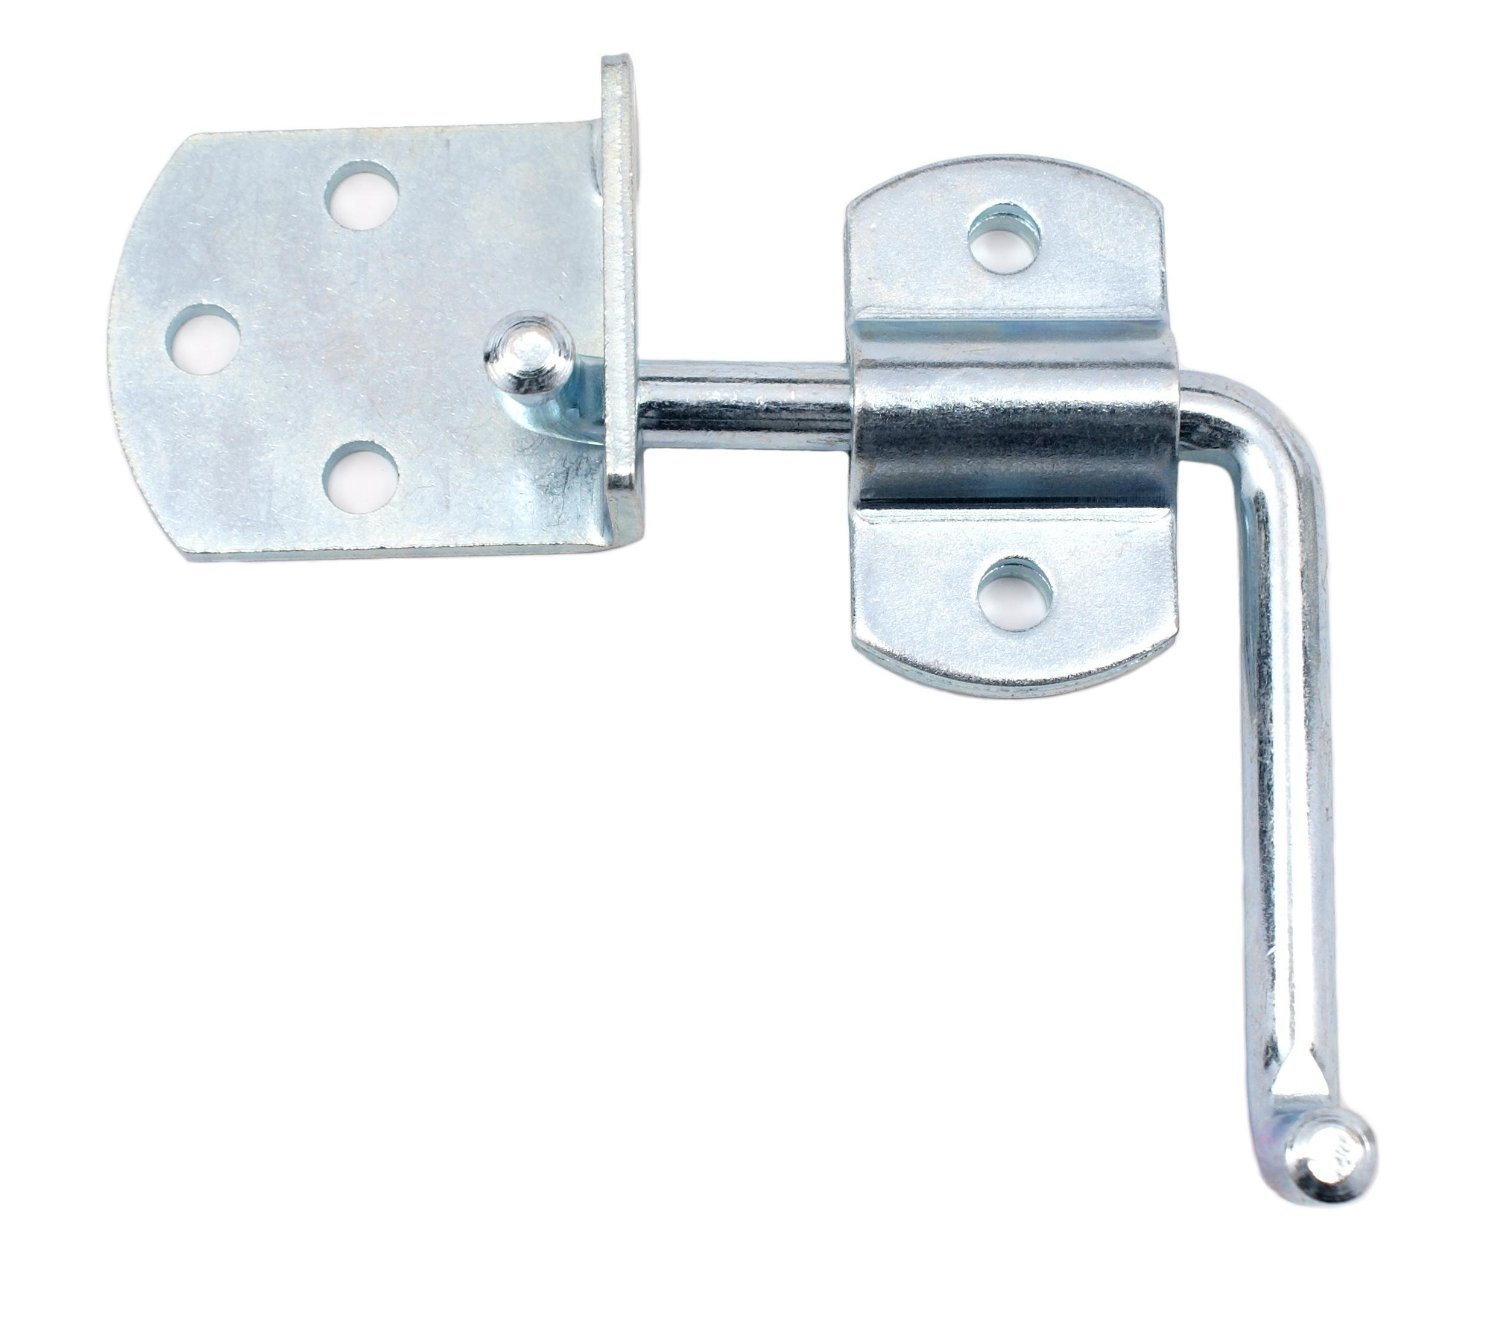 Pkg of (2) Side Gate Latch Sets for Stake Body Gates - Clear Zinc